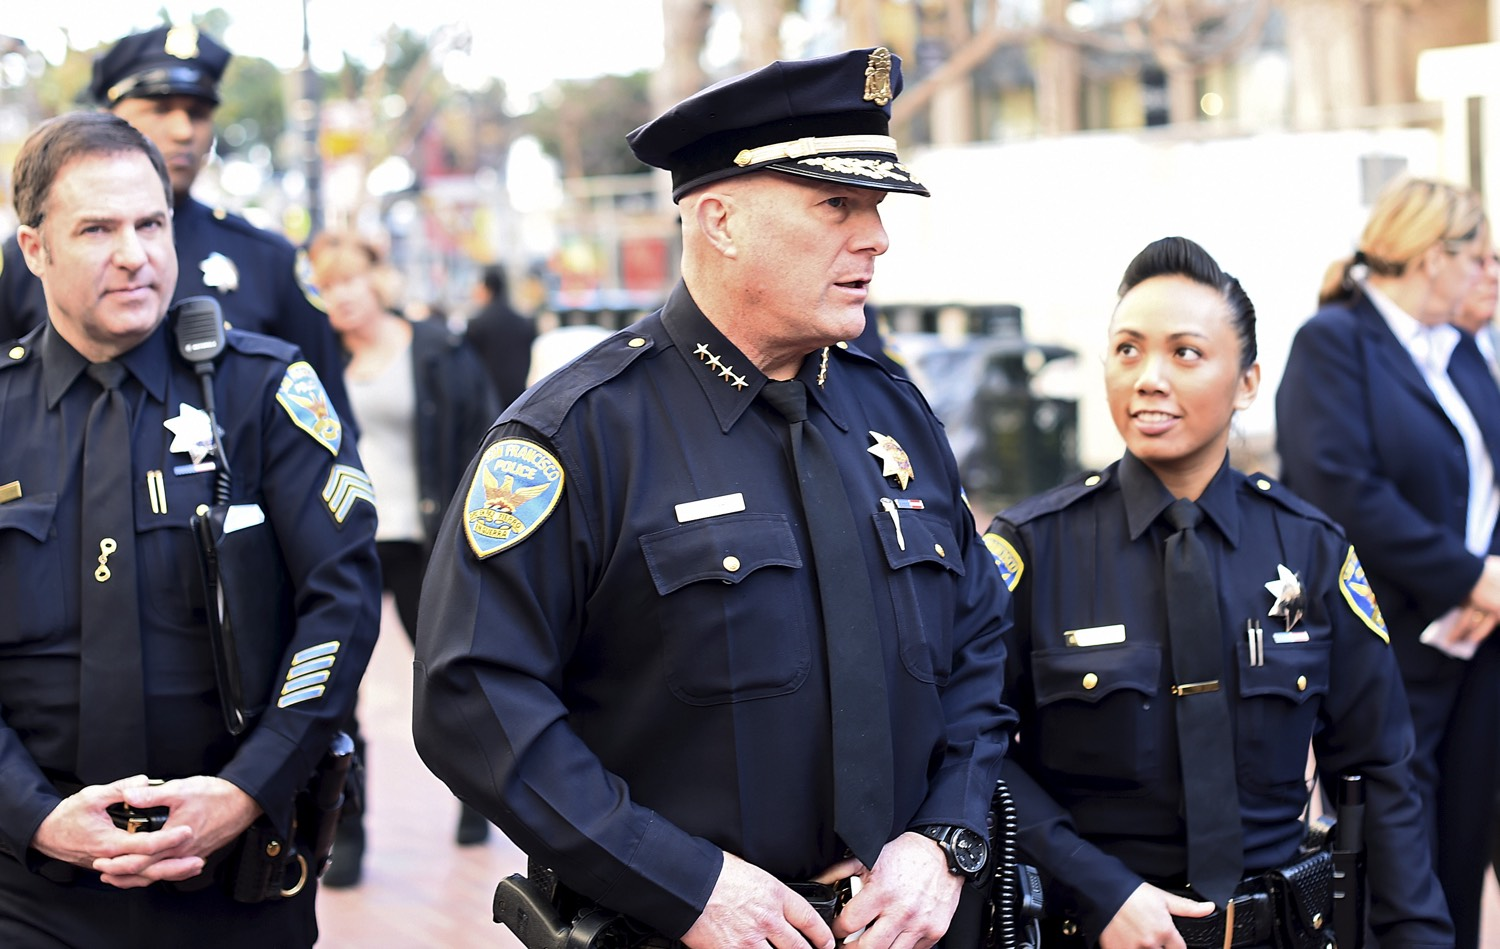 San Francisco Police Chief Greg Suhr walks through Super Bowl City in SF, Jan. 27, 2016. [REUTERS/Noah Berger]